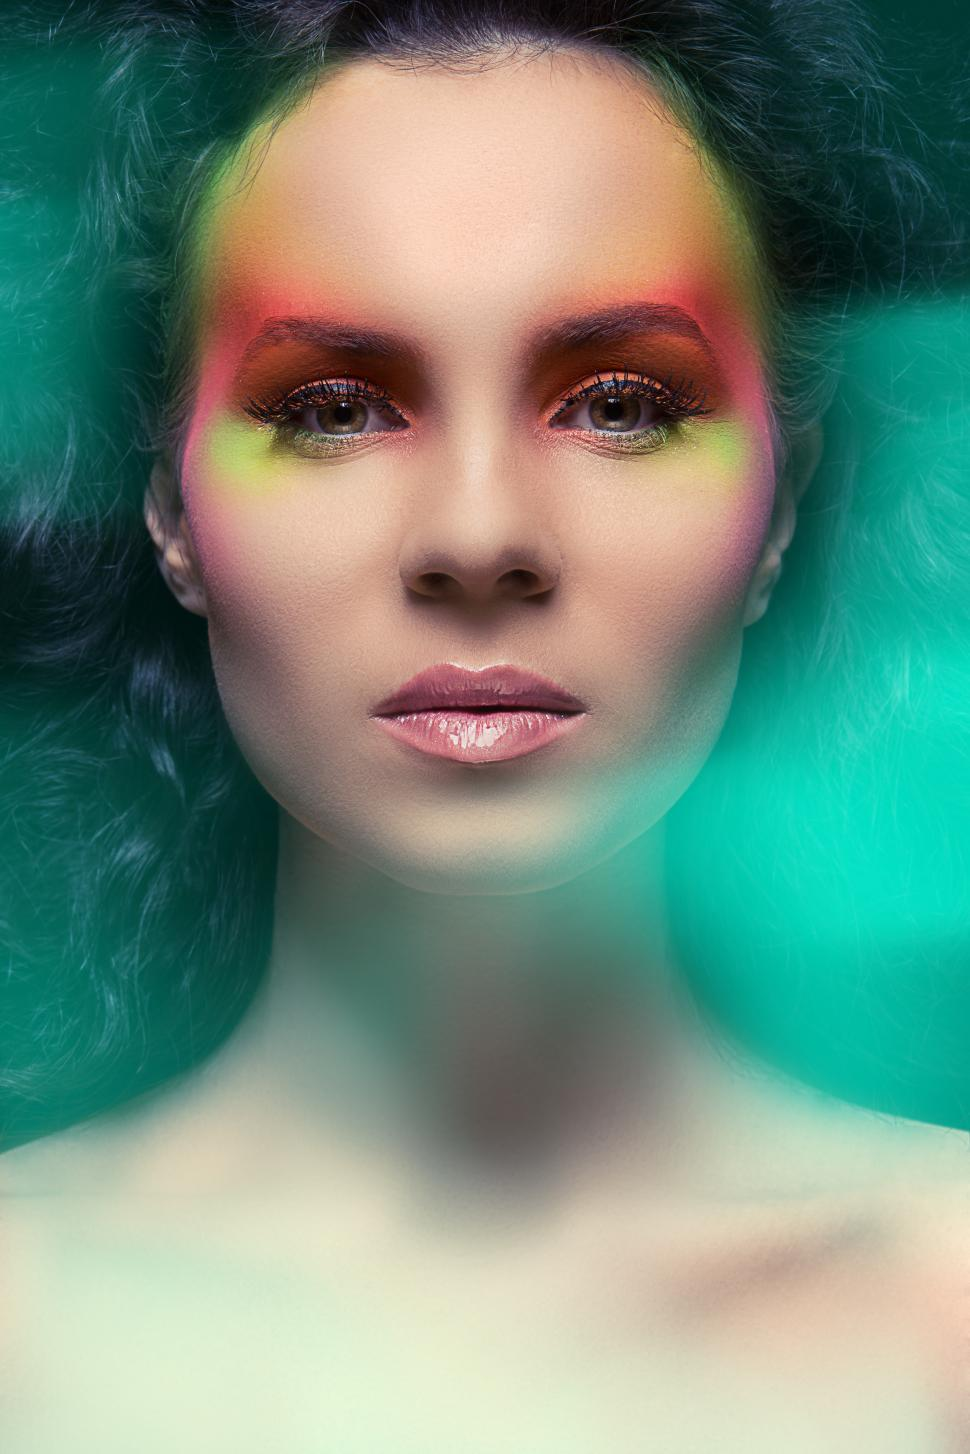 Download Free Stock Photo of Woman with exotic colored make-up